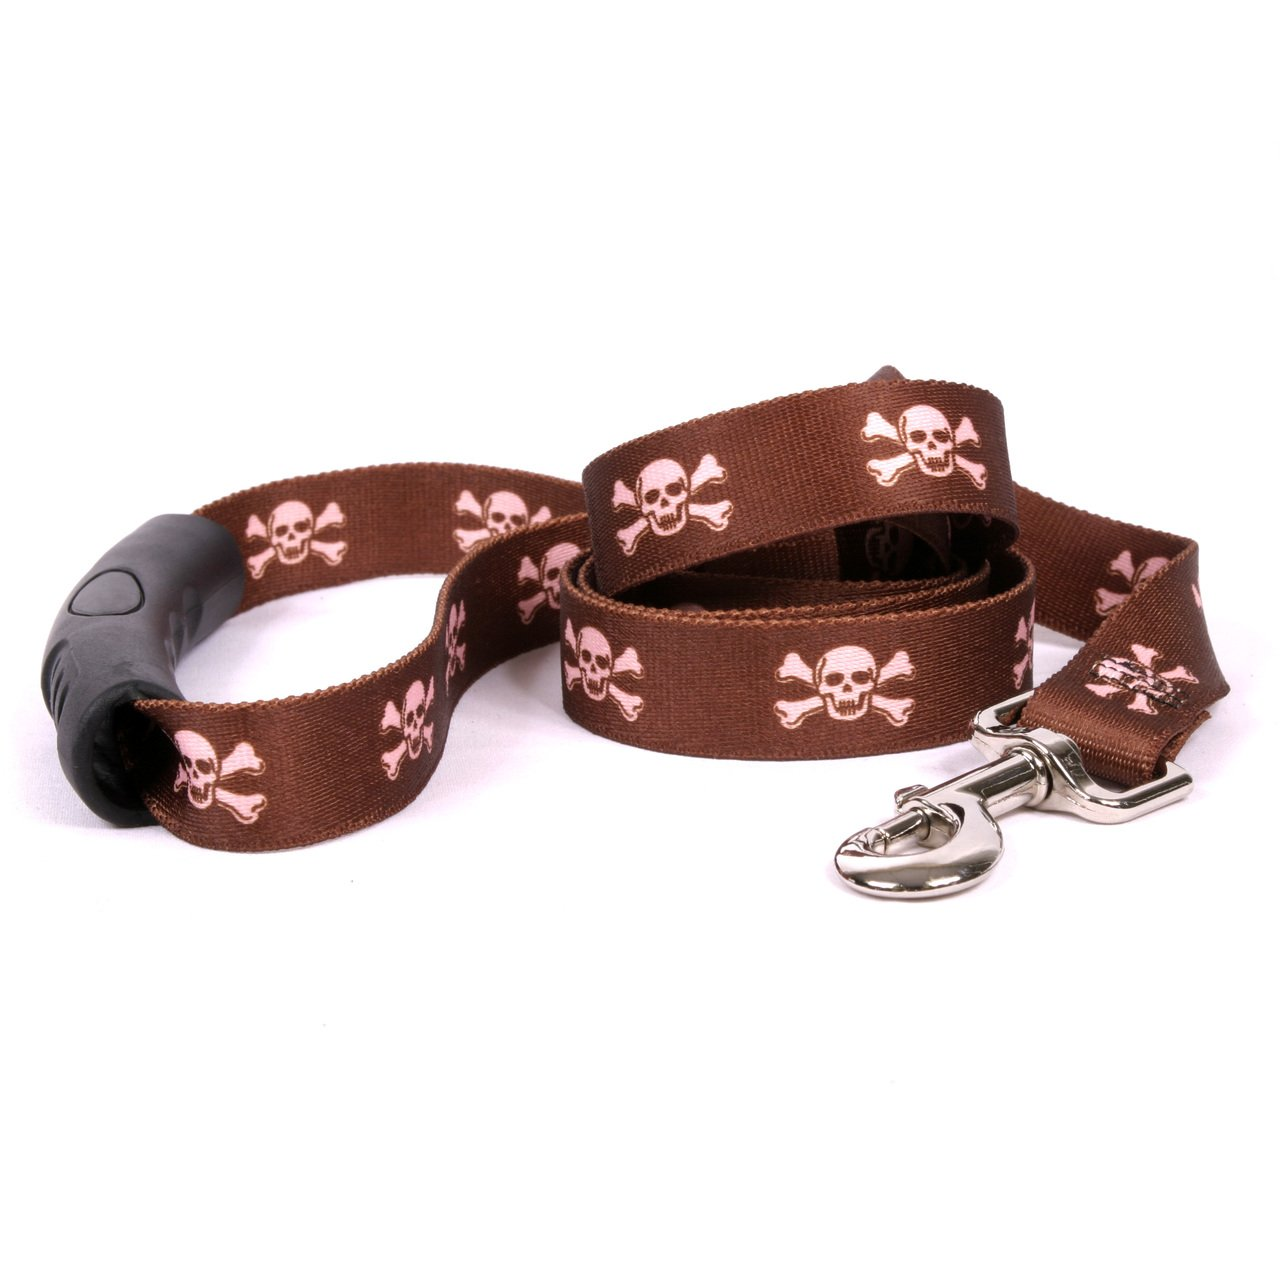 Yellow Dog Design Brown and Pink Skulls Ez-Grip Dog Leash with Comfort Handle 1'' Wide and 5' (60'') Long, Large